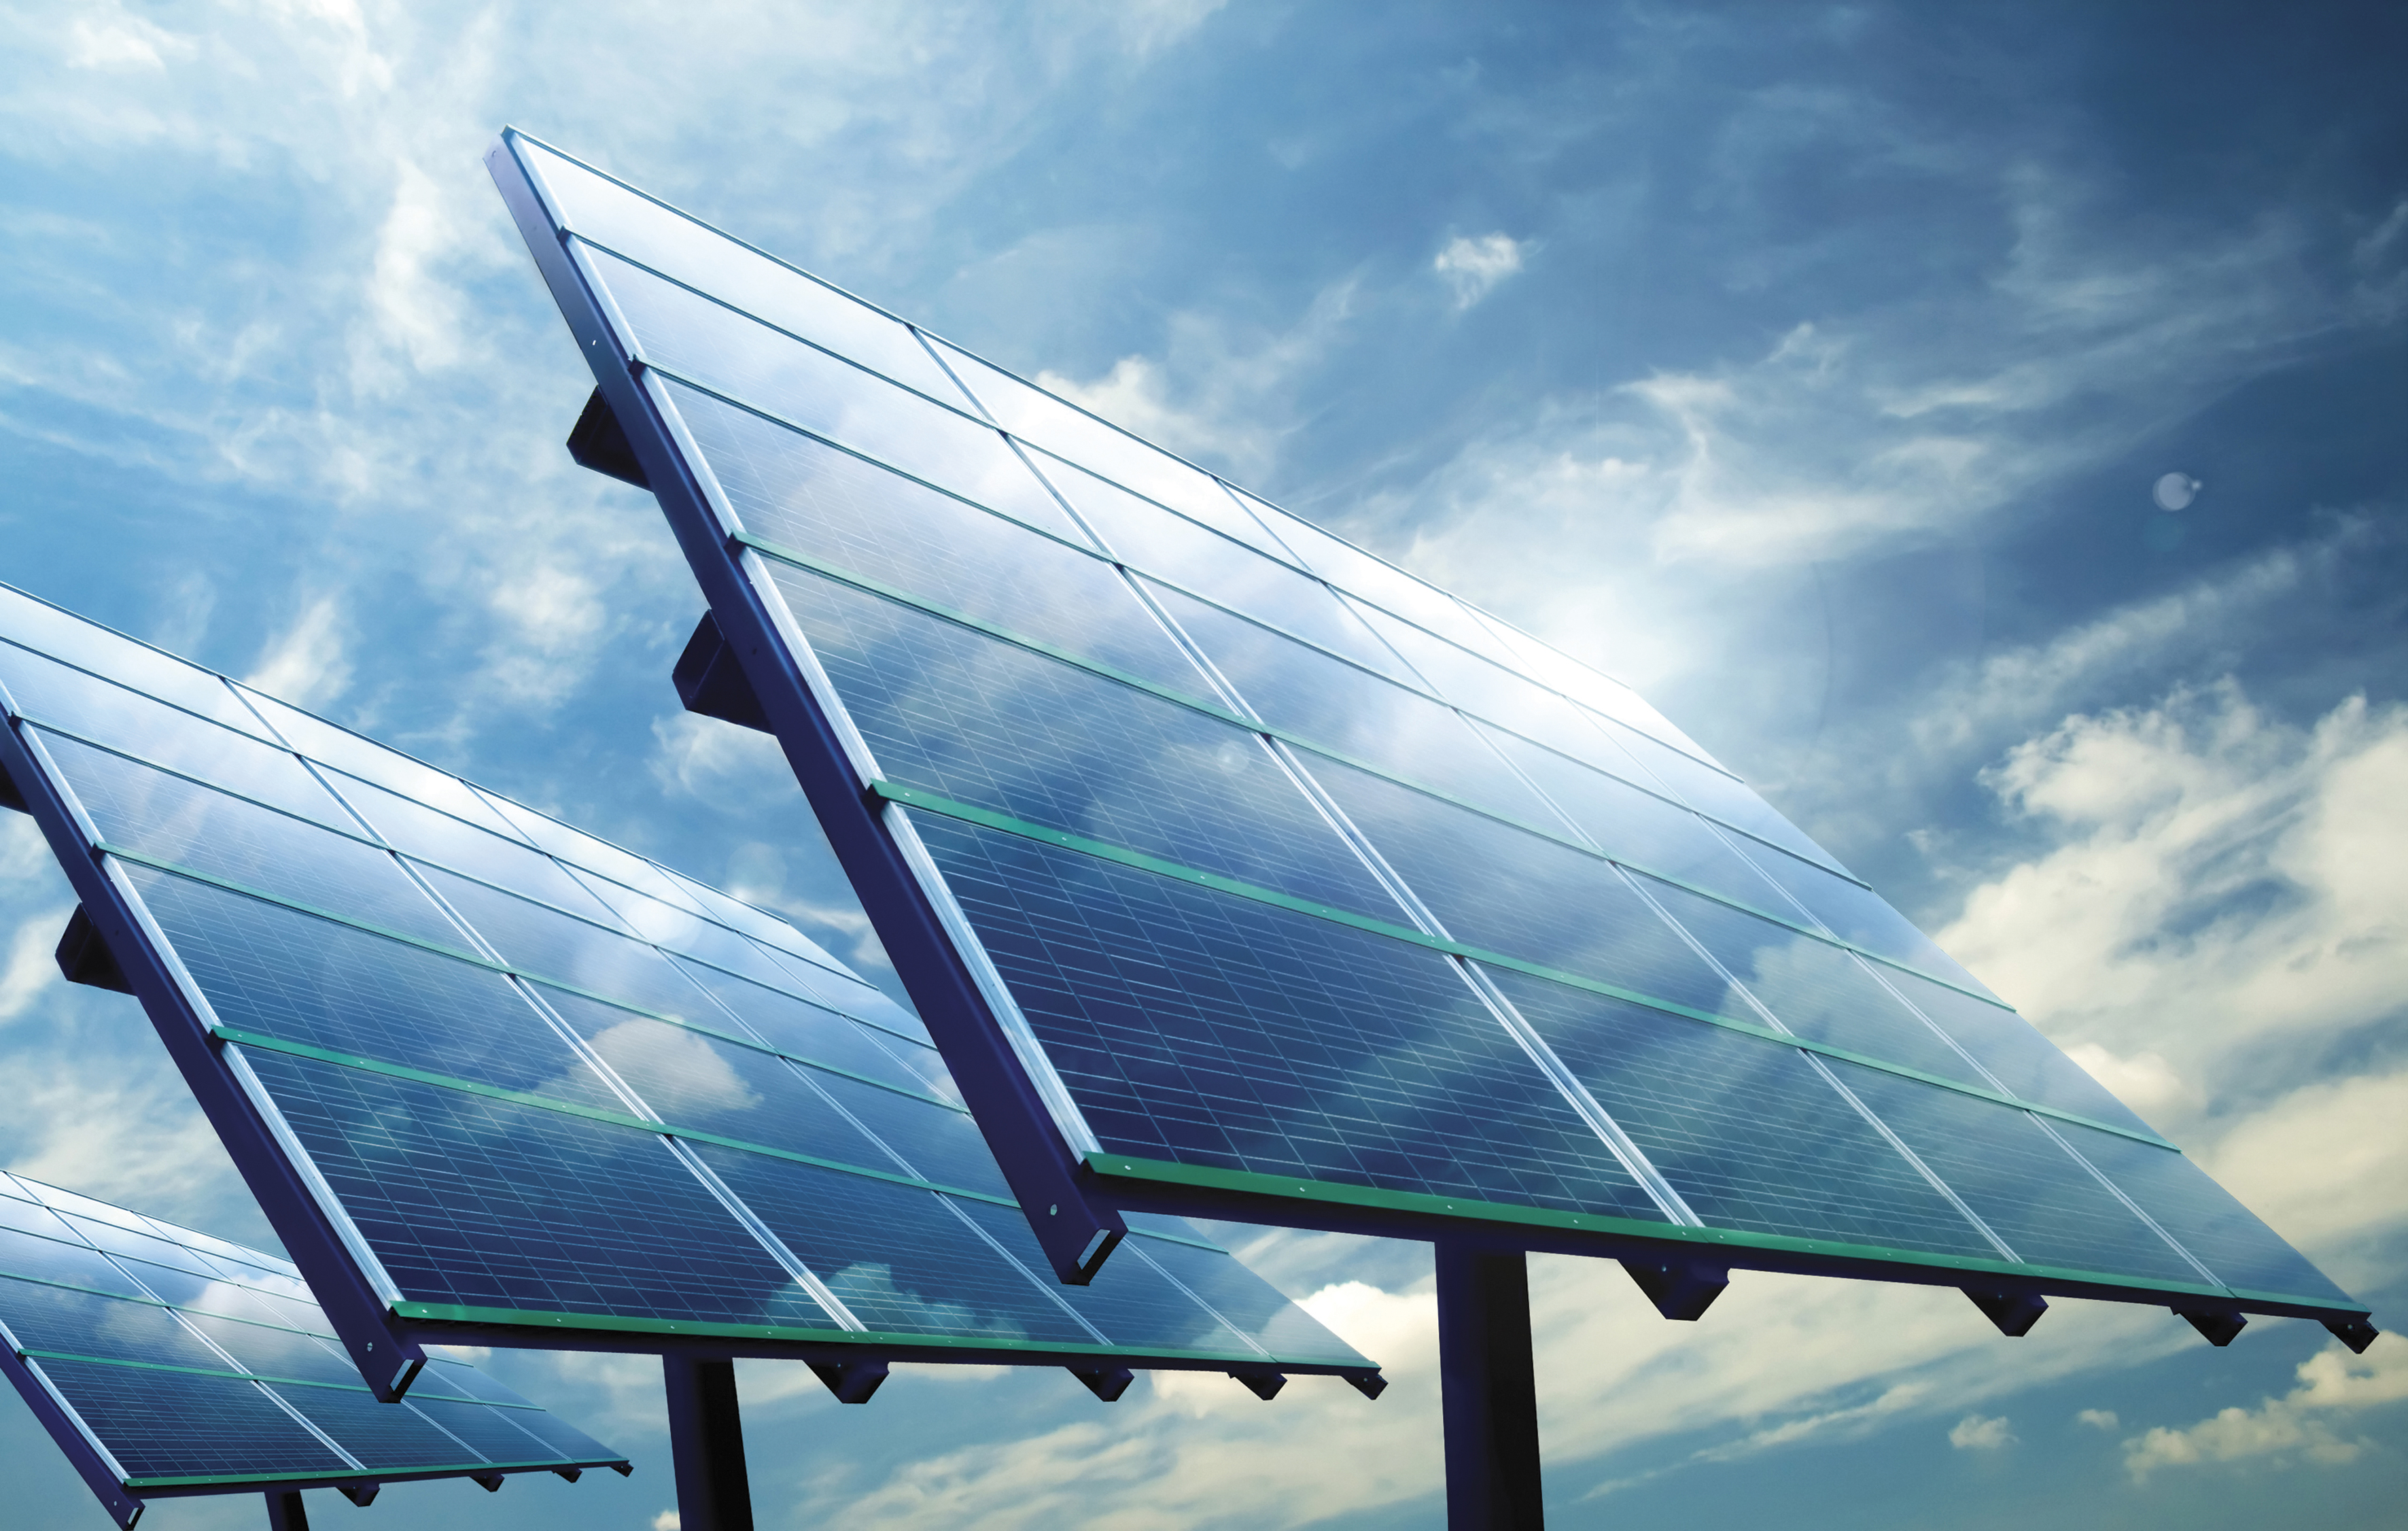 Primer On Photovoltaics in Solar Energy Systems – Part 1 | Phlebas